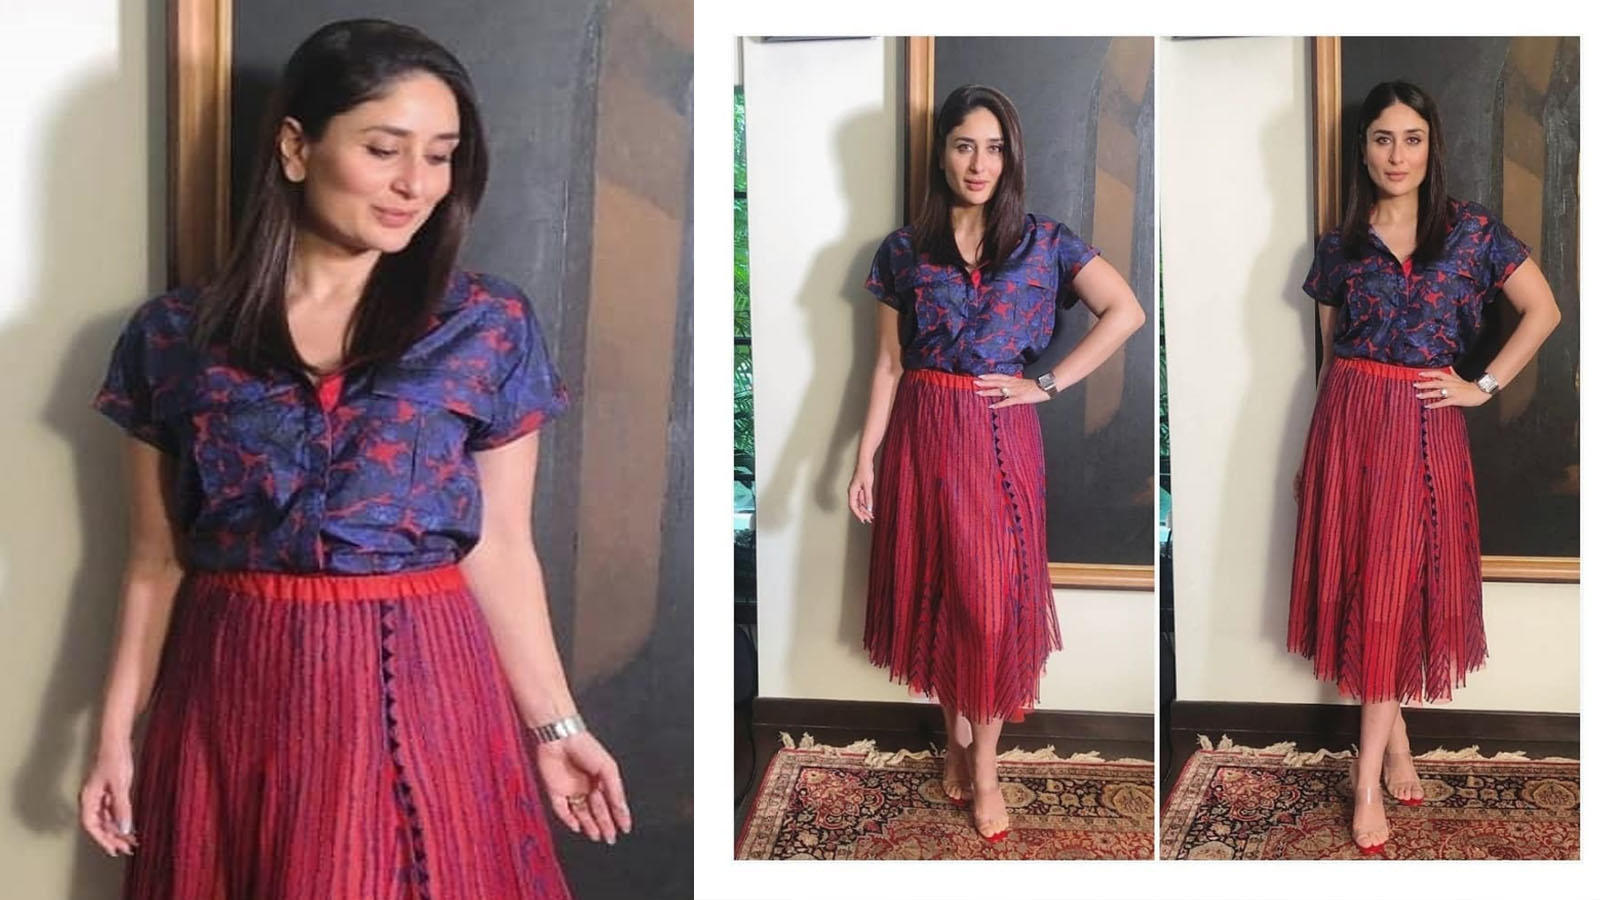 kareena-kapoor-khan-is-the-ultimate-style-diva-in-classy-skirt-blouse-attire